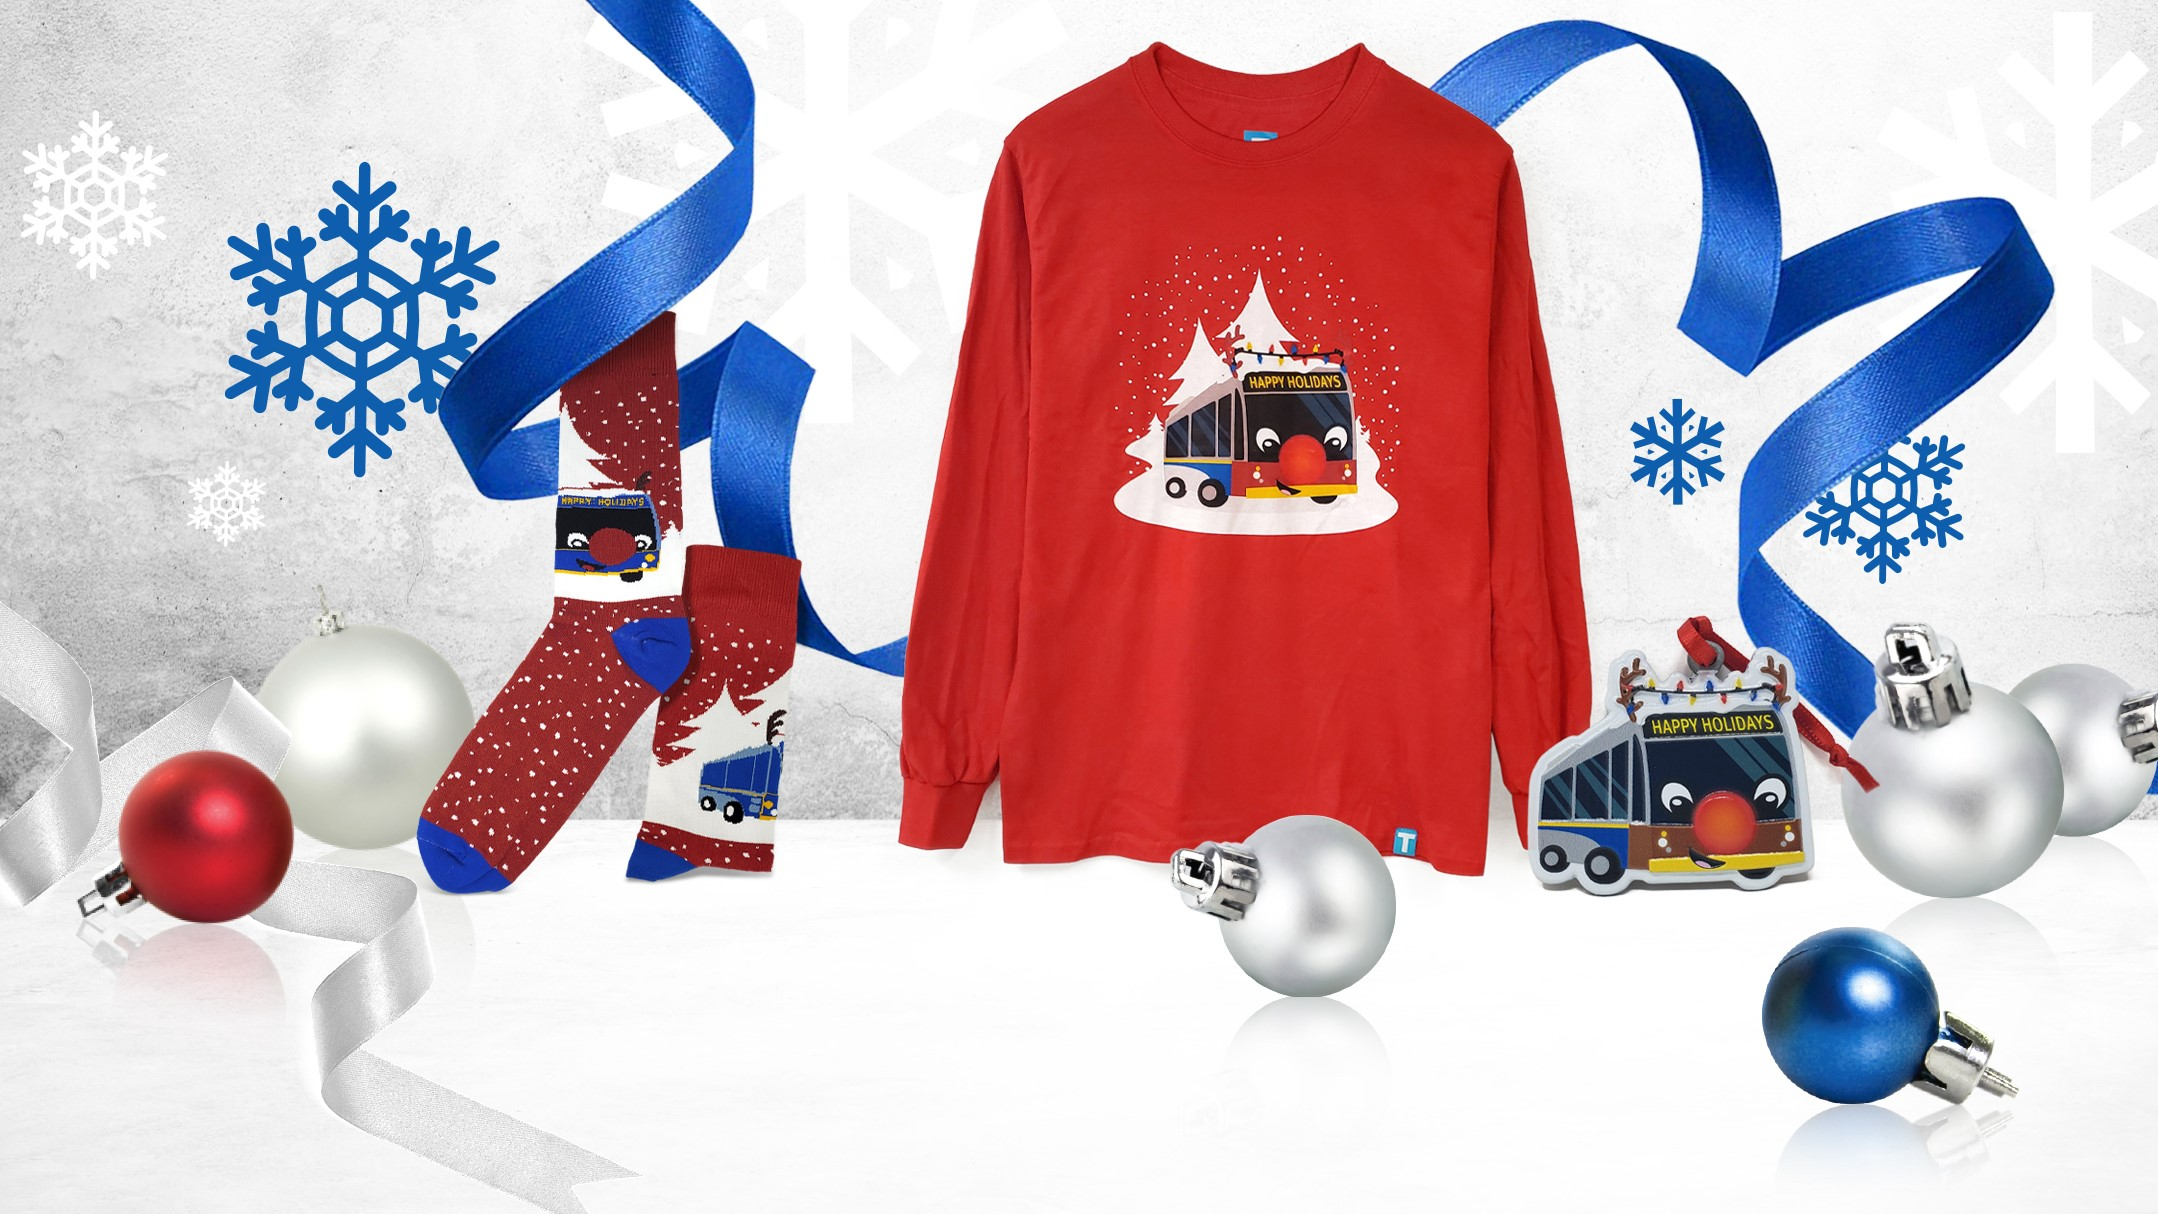 The new Reindeer Bus merchandise